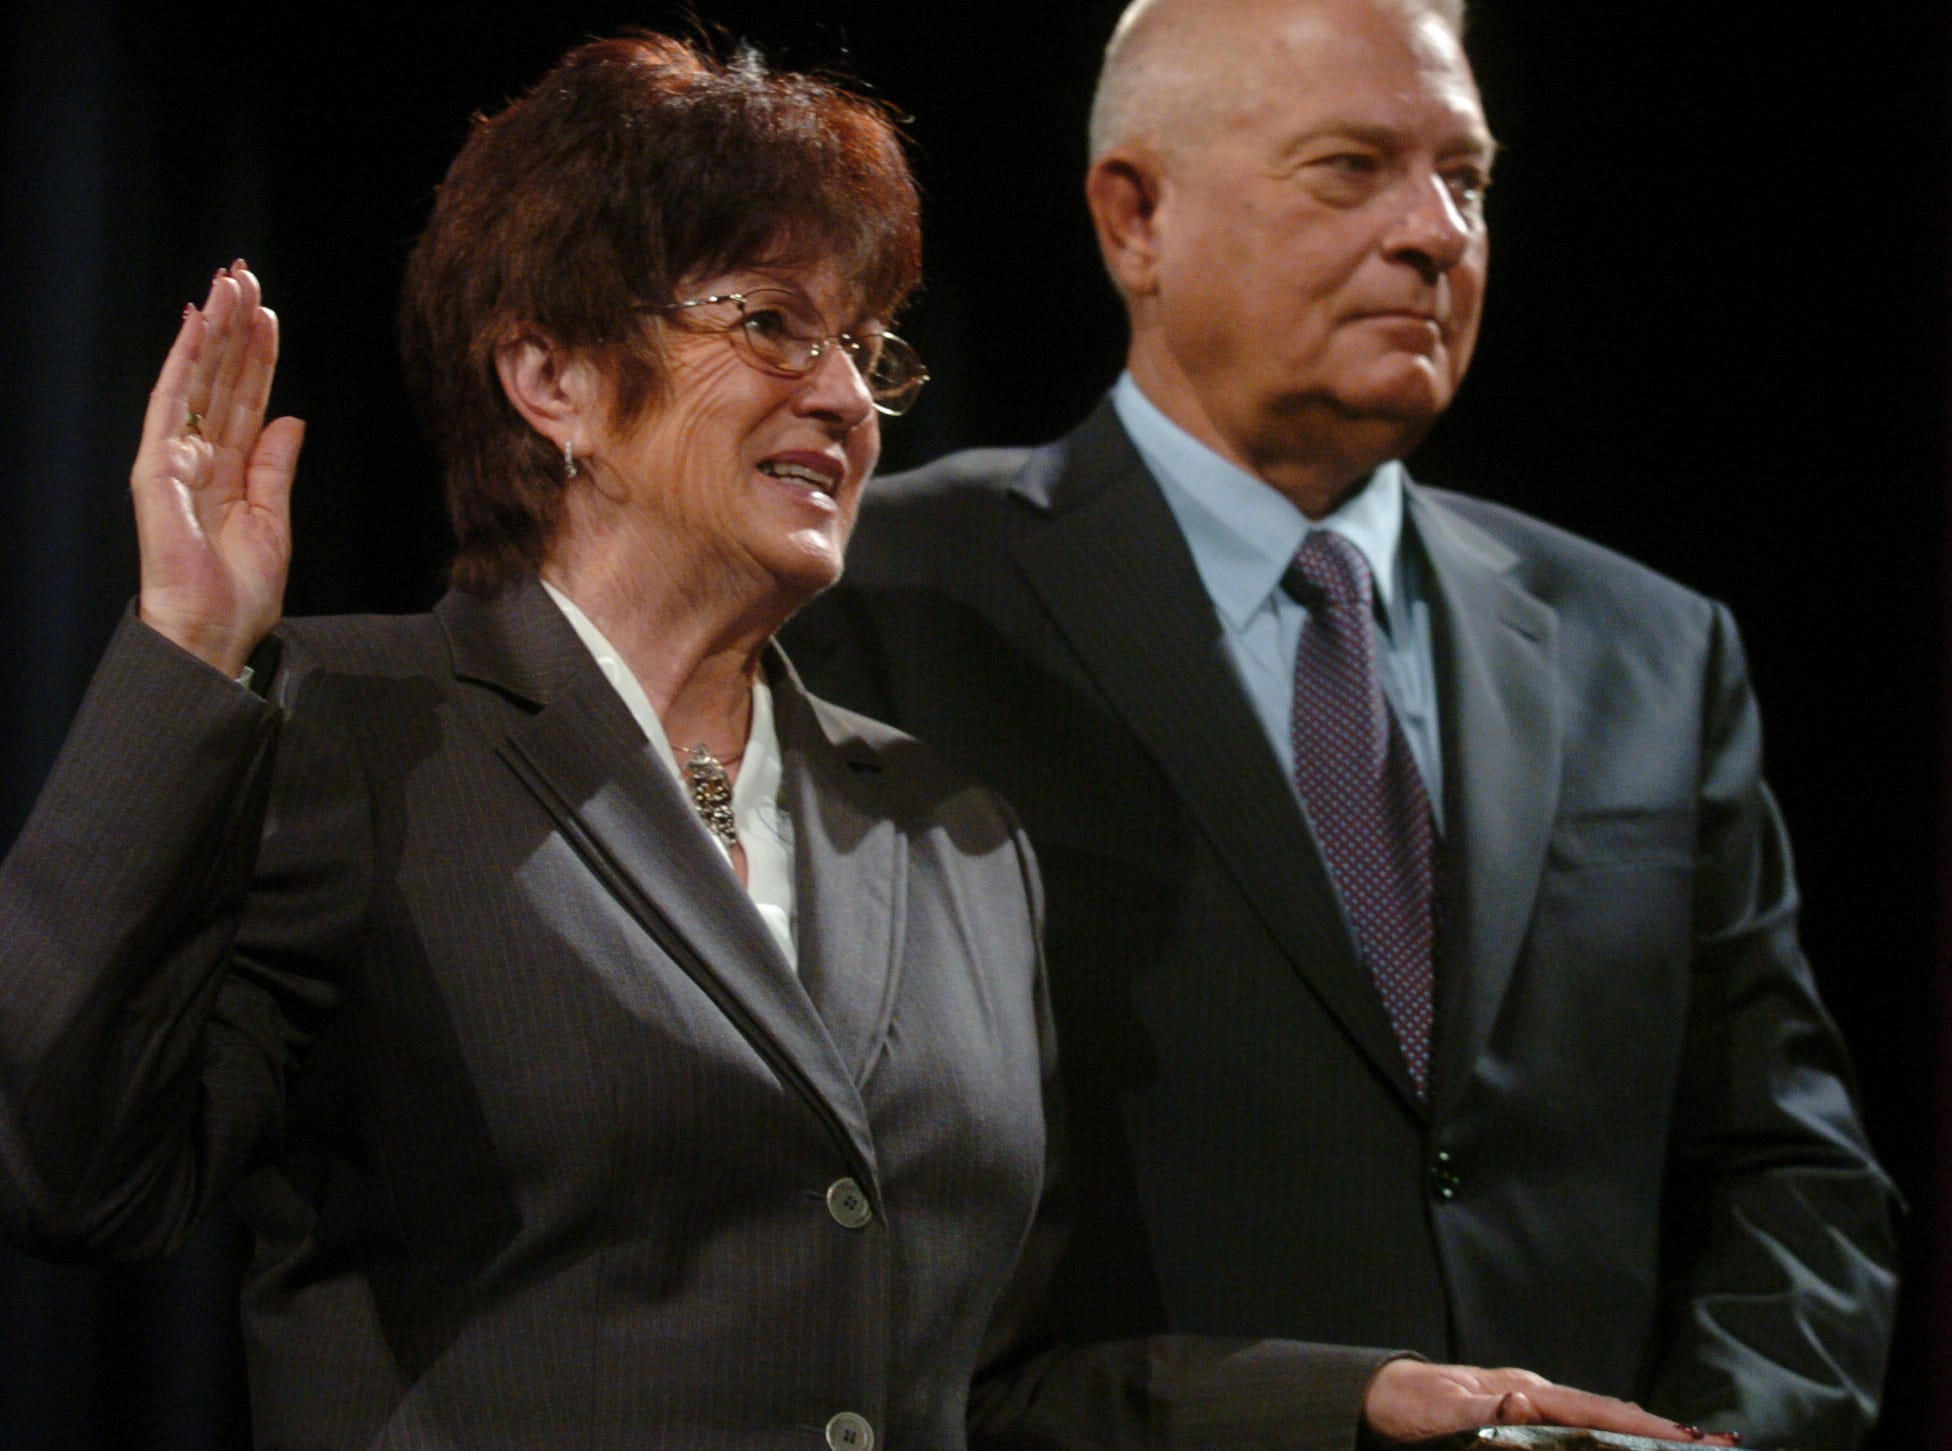 Council member Thelda Williams (left) is sworn into office as her husband, Mel, holds The Bible.